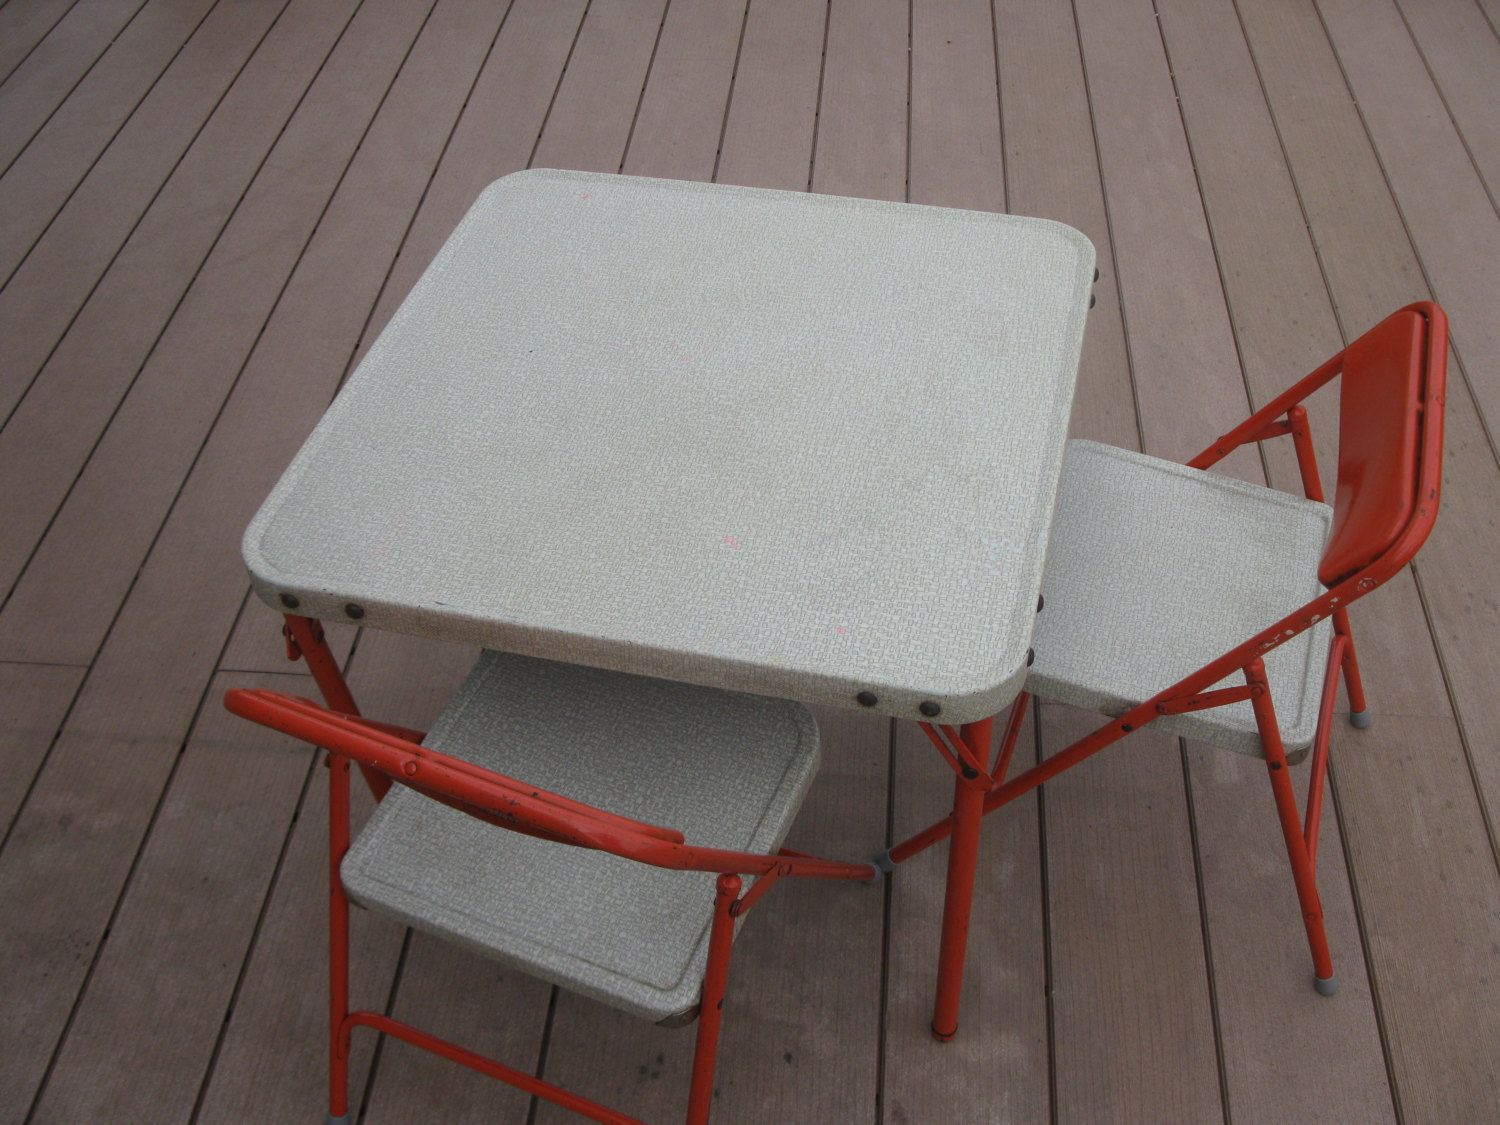 Samsonite Childs Table And Chairs  Folding Chairs  All Metal  Orange  Retro